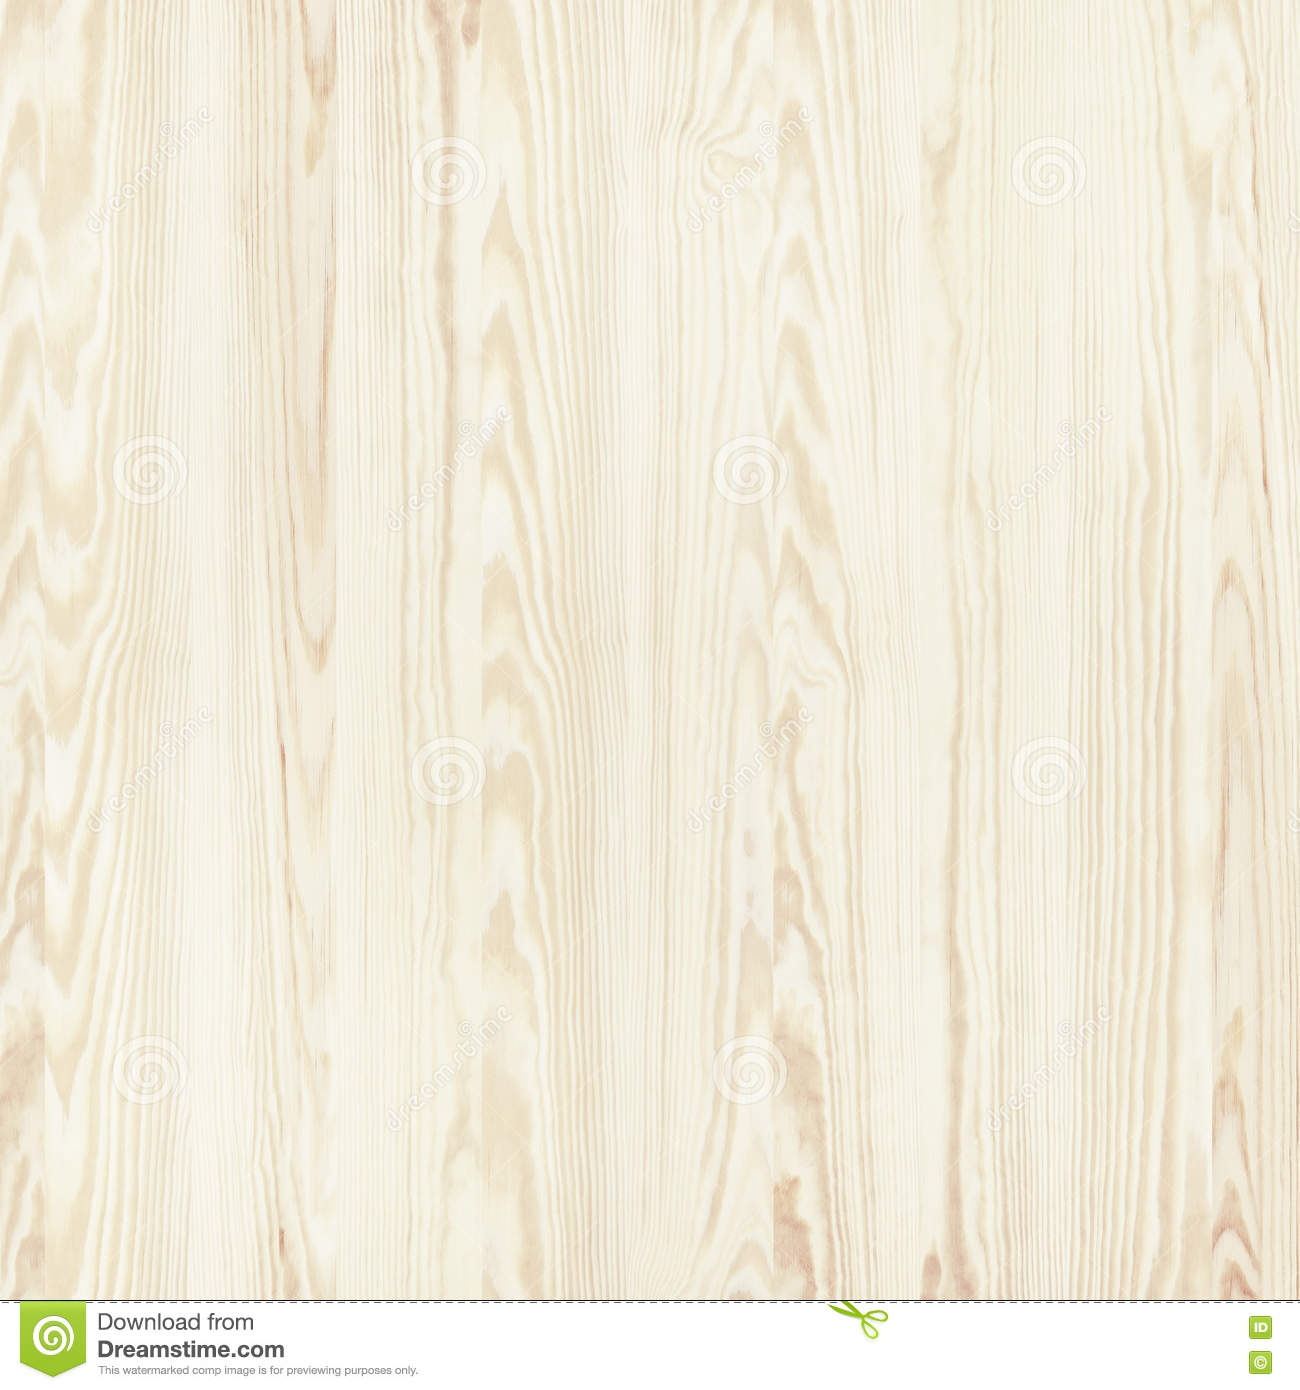 White wooden table texture - Background Bleached Board Clean Panel Pine Table Texture Timber White Wood